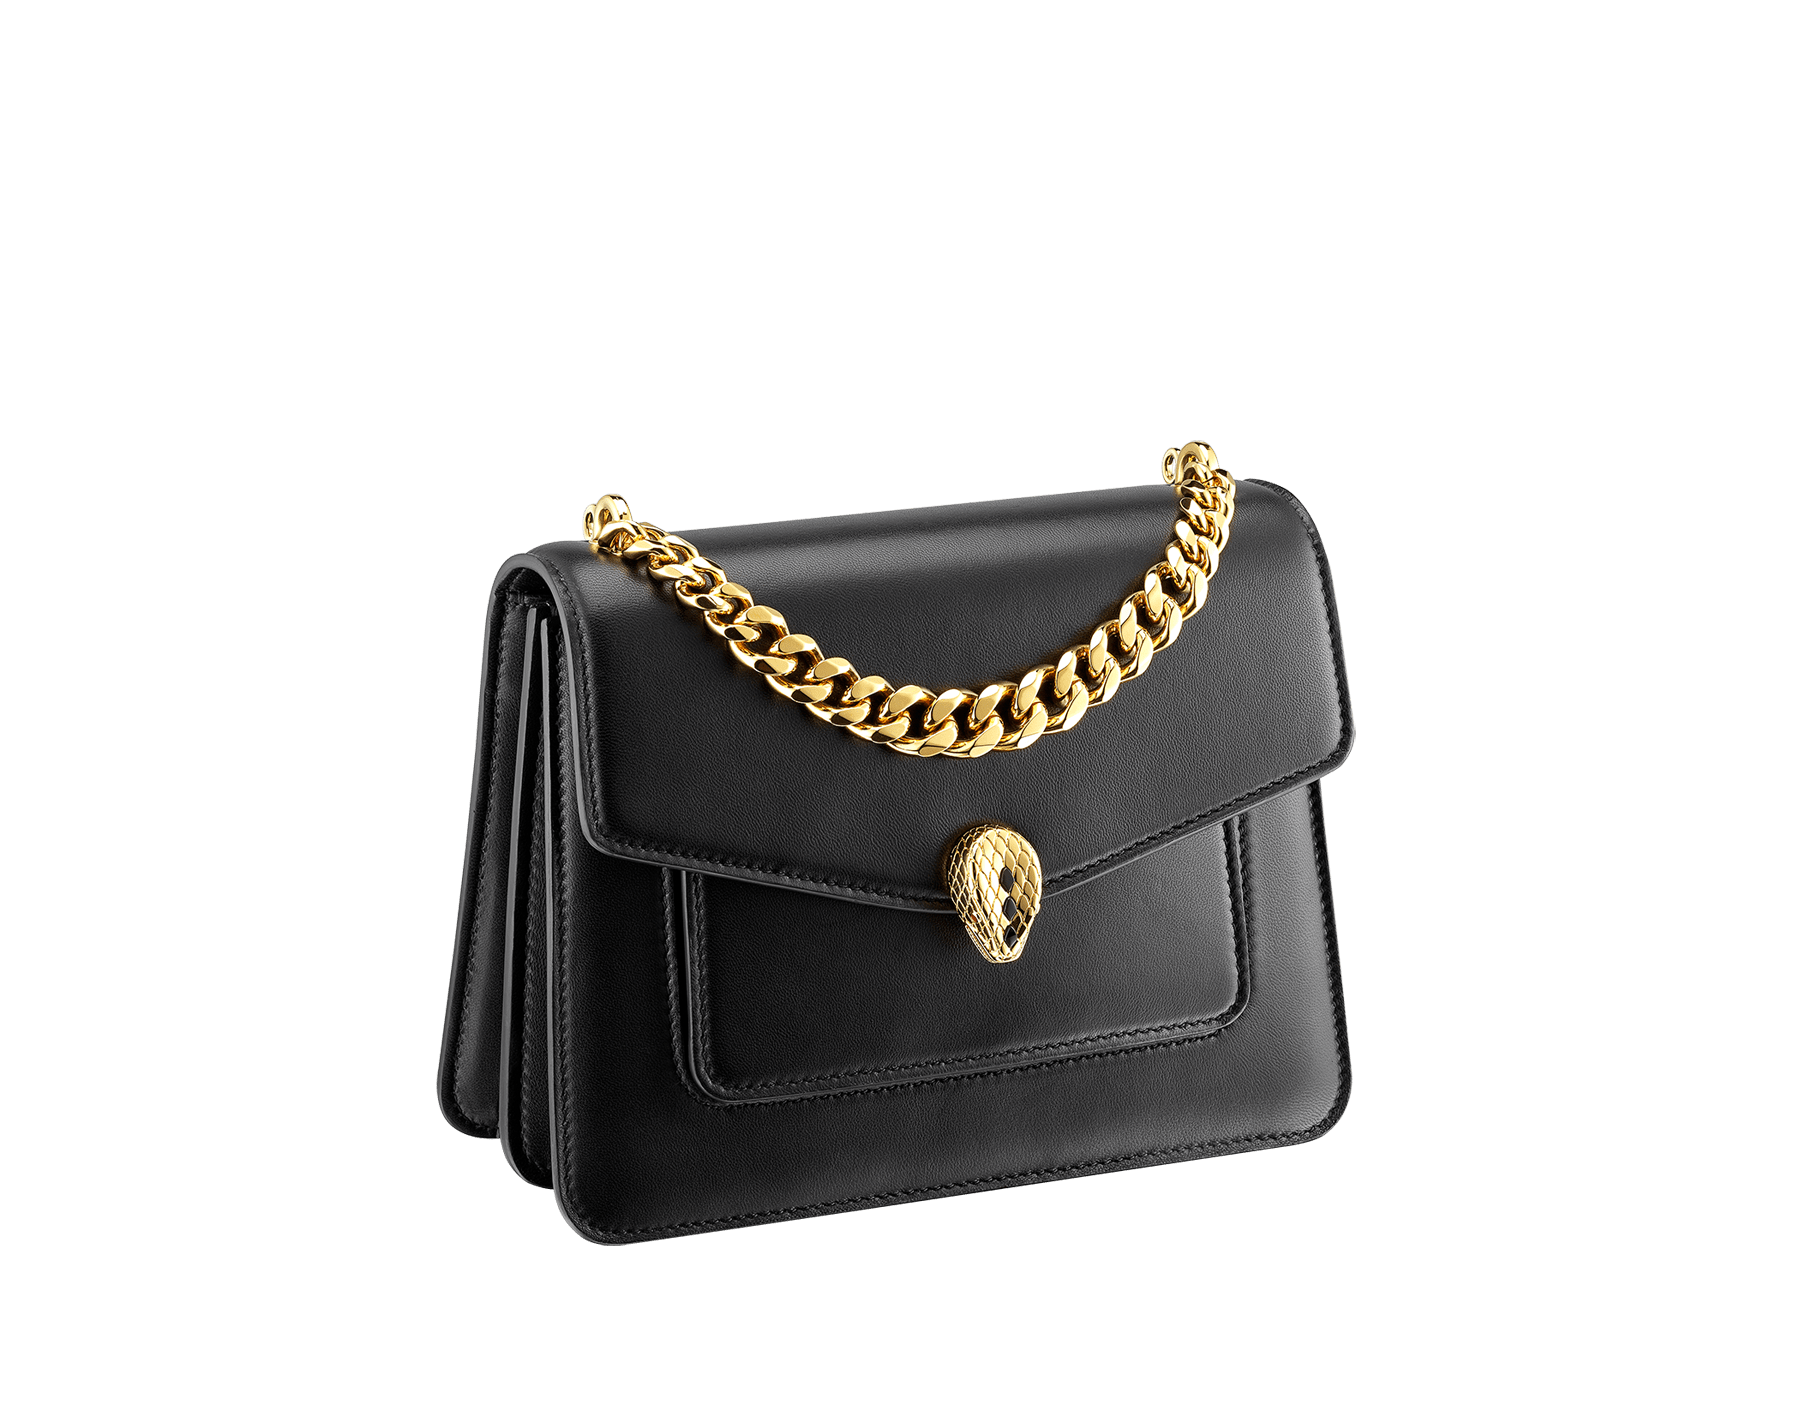 """""""Serpenti Forever"""" small maxi chain crossbody bag in black nappa leather, with black nappa leather inner lining. New Serpenti head closure in gold-plated brass, finished with small black onyx scales in the middle, and red enamel eyes. 291050 image 3"""